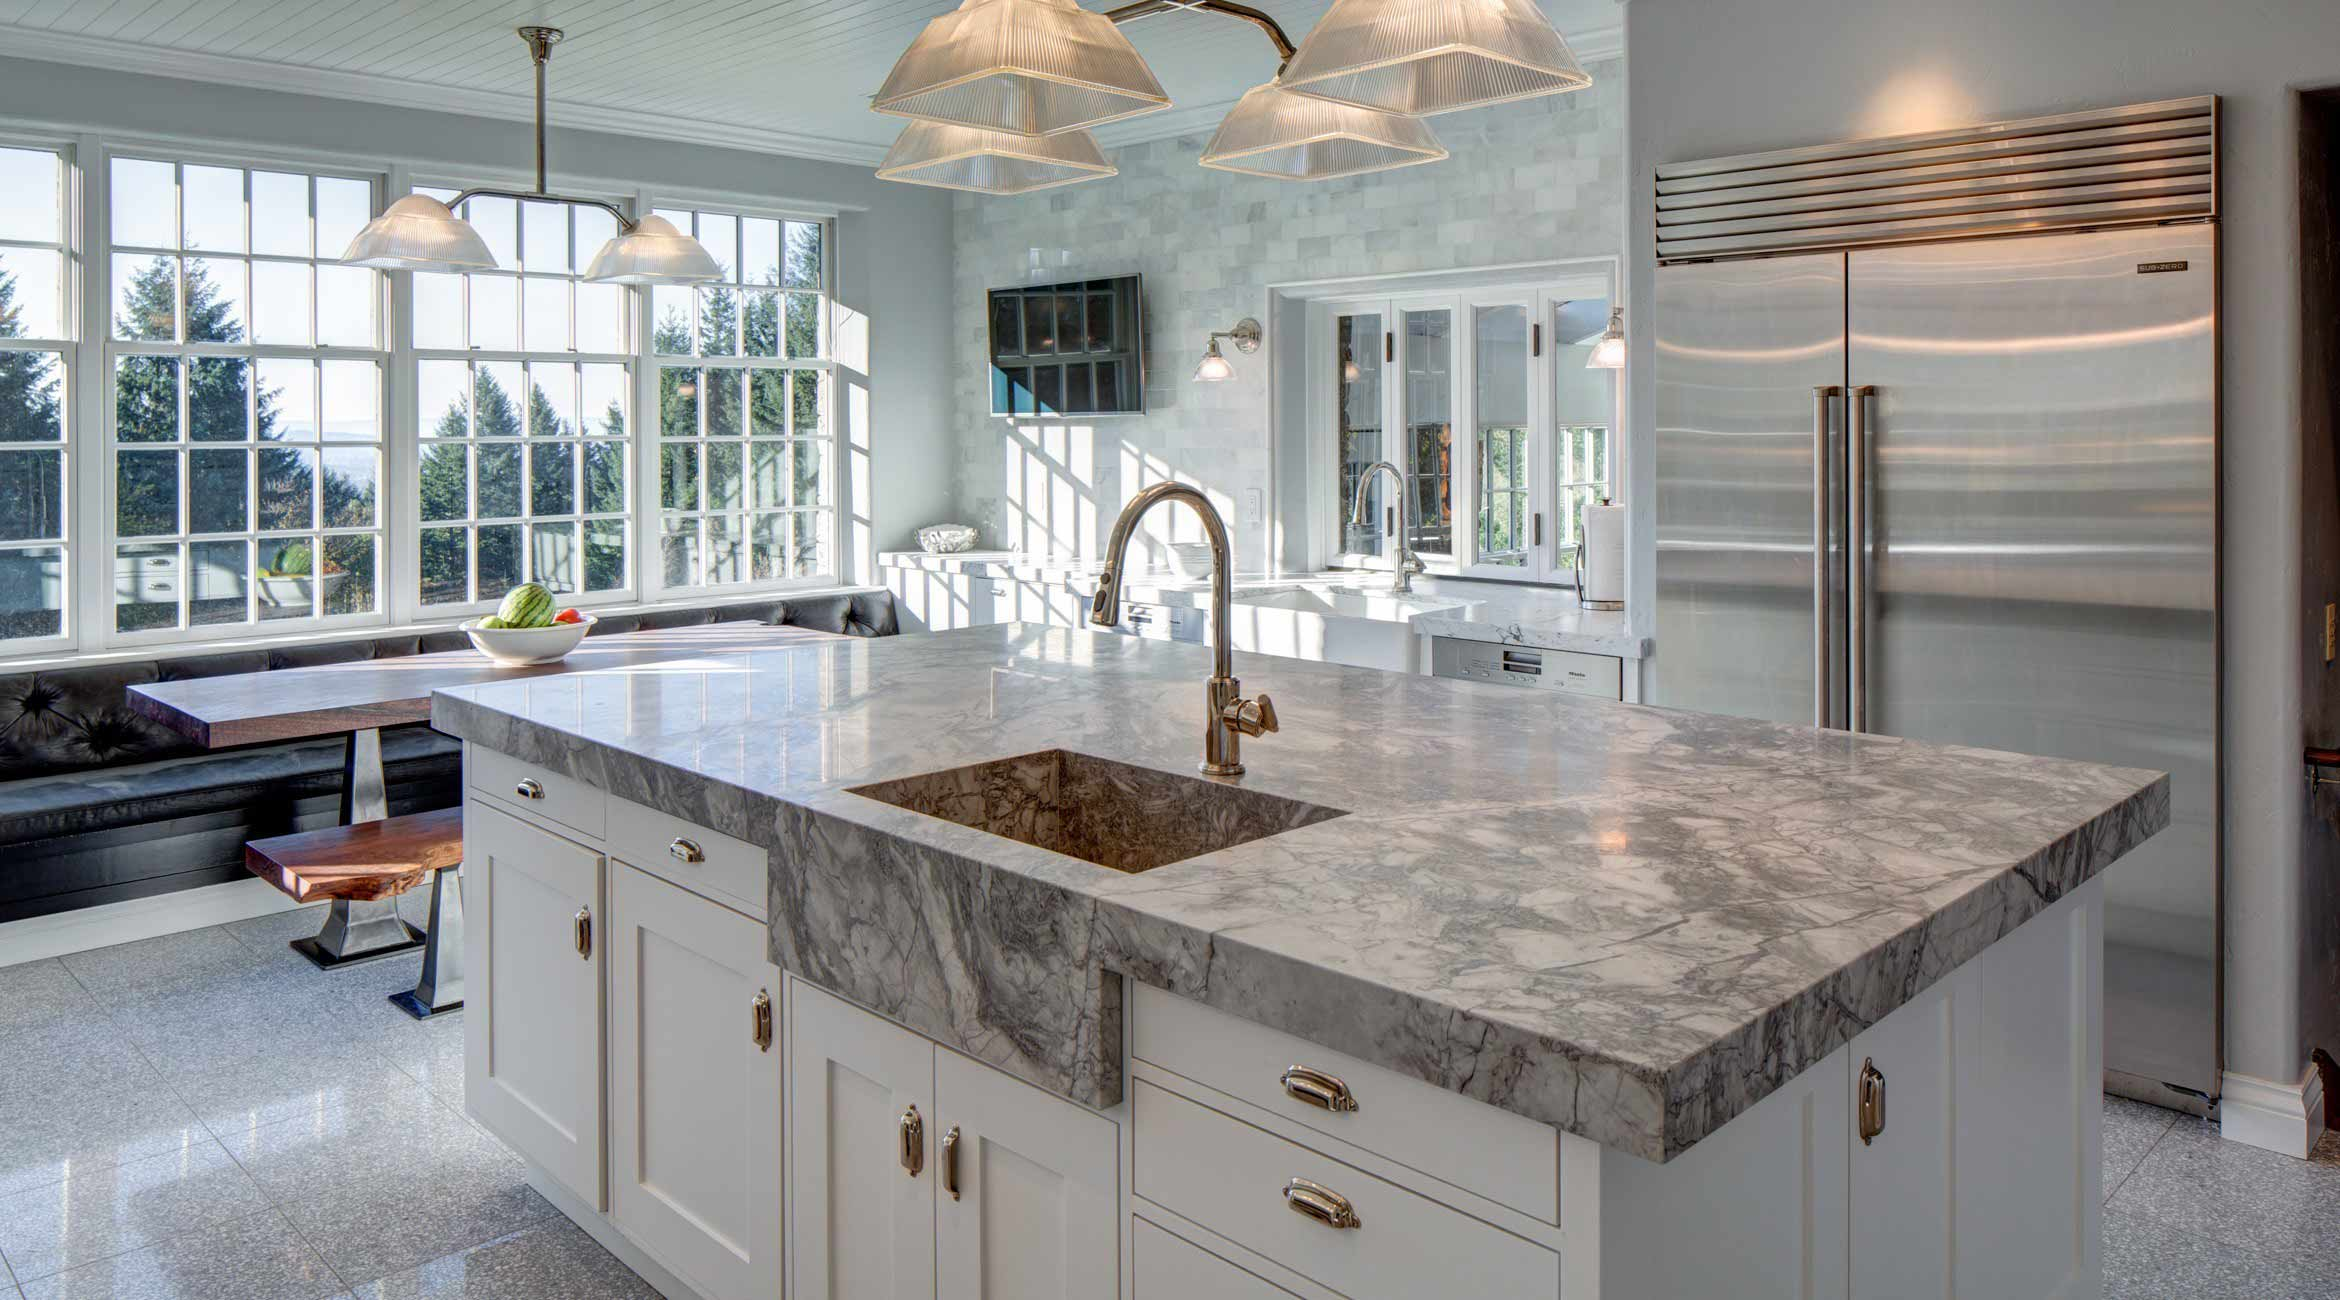 7 Most Popular Countertop Materials For Kitchen Remodels